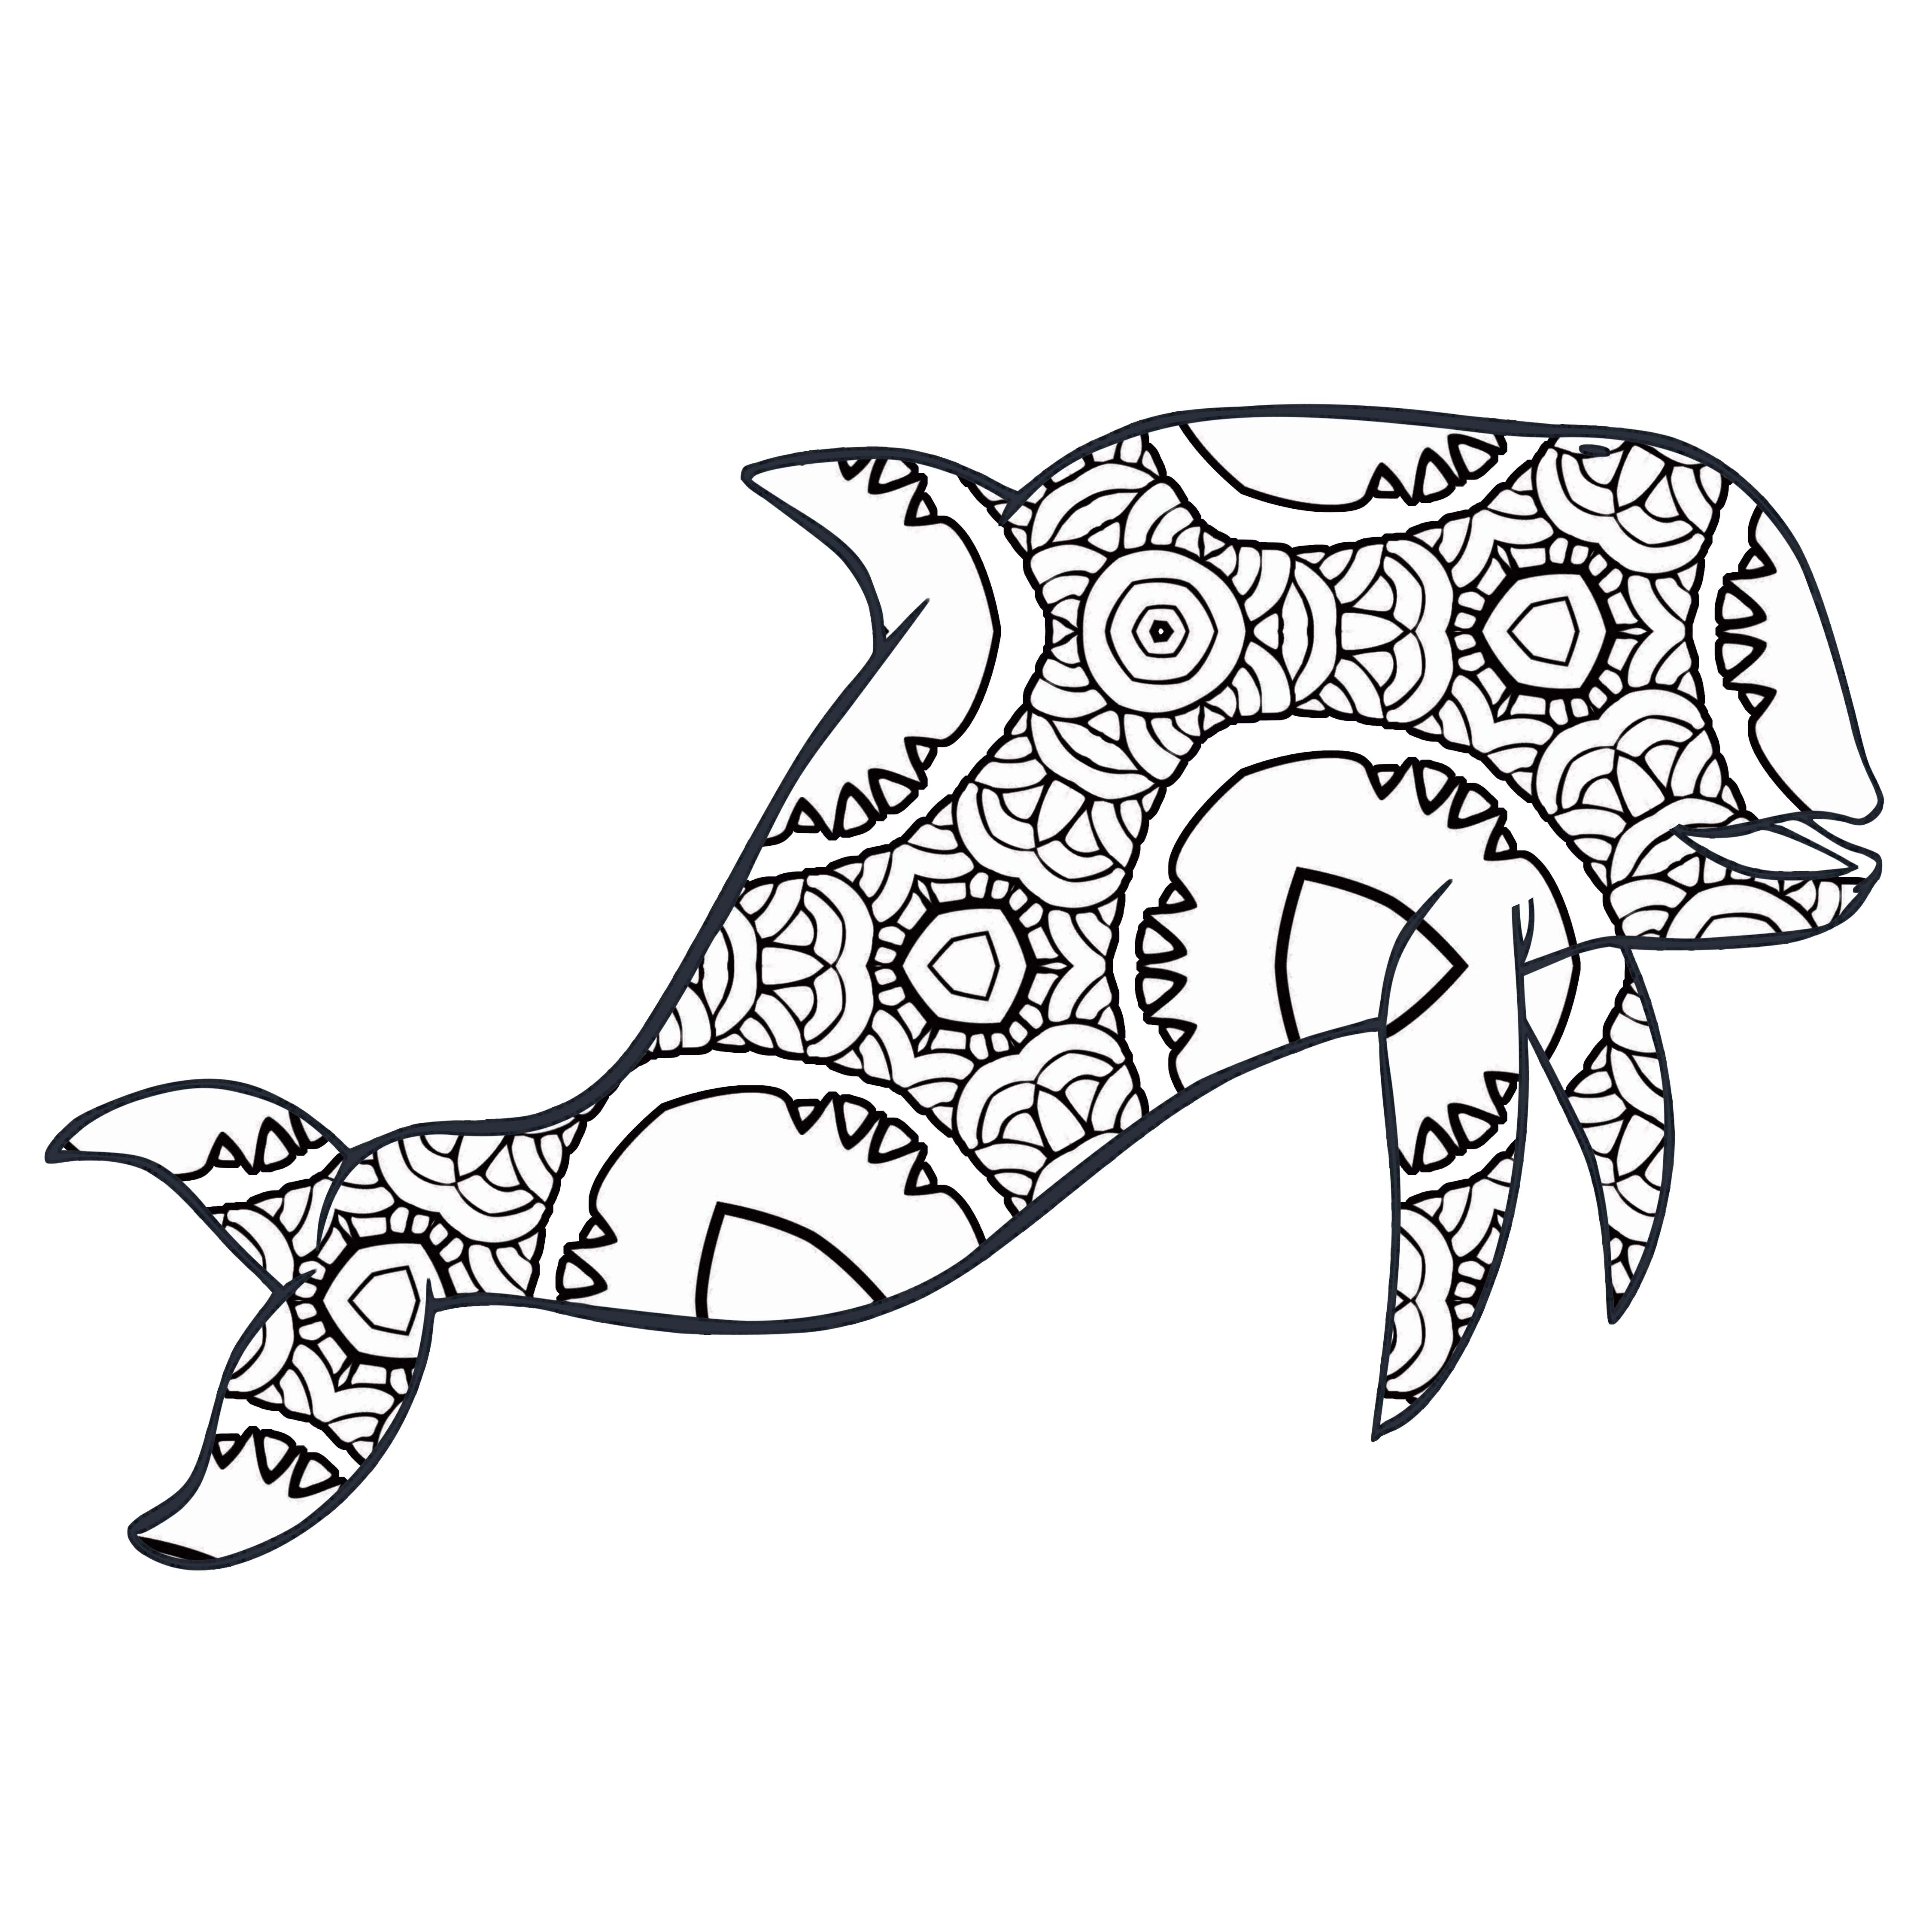 30 Free Printable Geometric Animal Coloring Pages | The Cottage Market - Free Coloring Pages Animals Printable